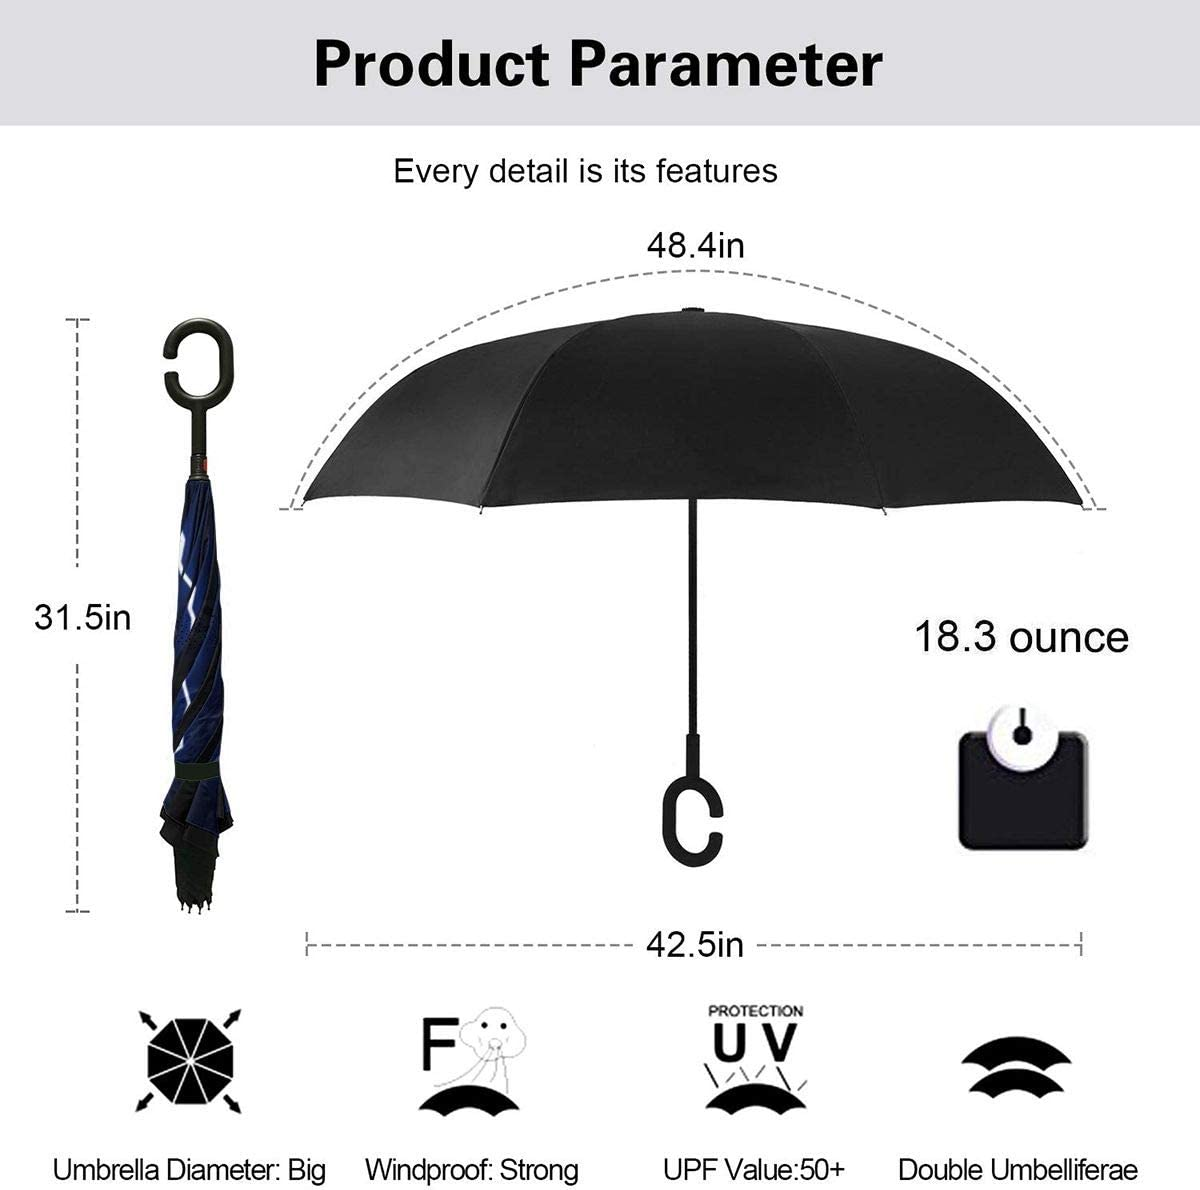 PYFXSALA Blue Lightning Bolts Windproof Inverted Umbrella Double Layer UV Protection Folding Reverse Umbrella for Car Rain Outdoor Self Stand Upside Down with C-Shaped Handle